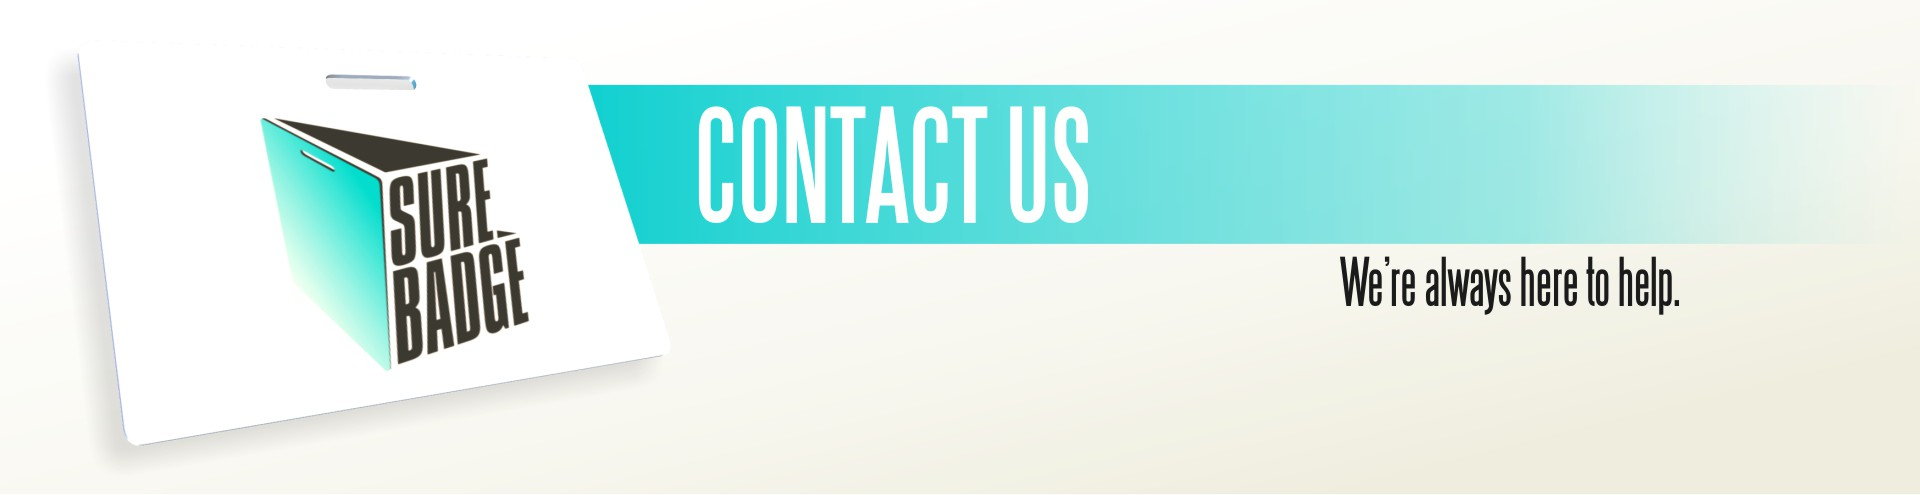 Contact Us. We're always here to help.